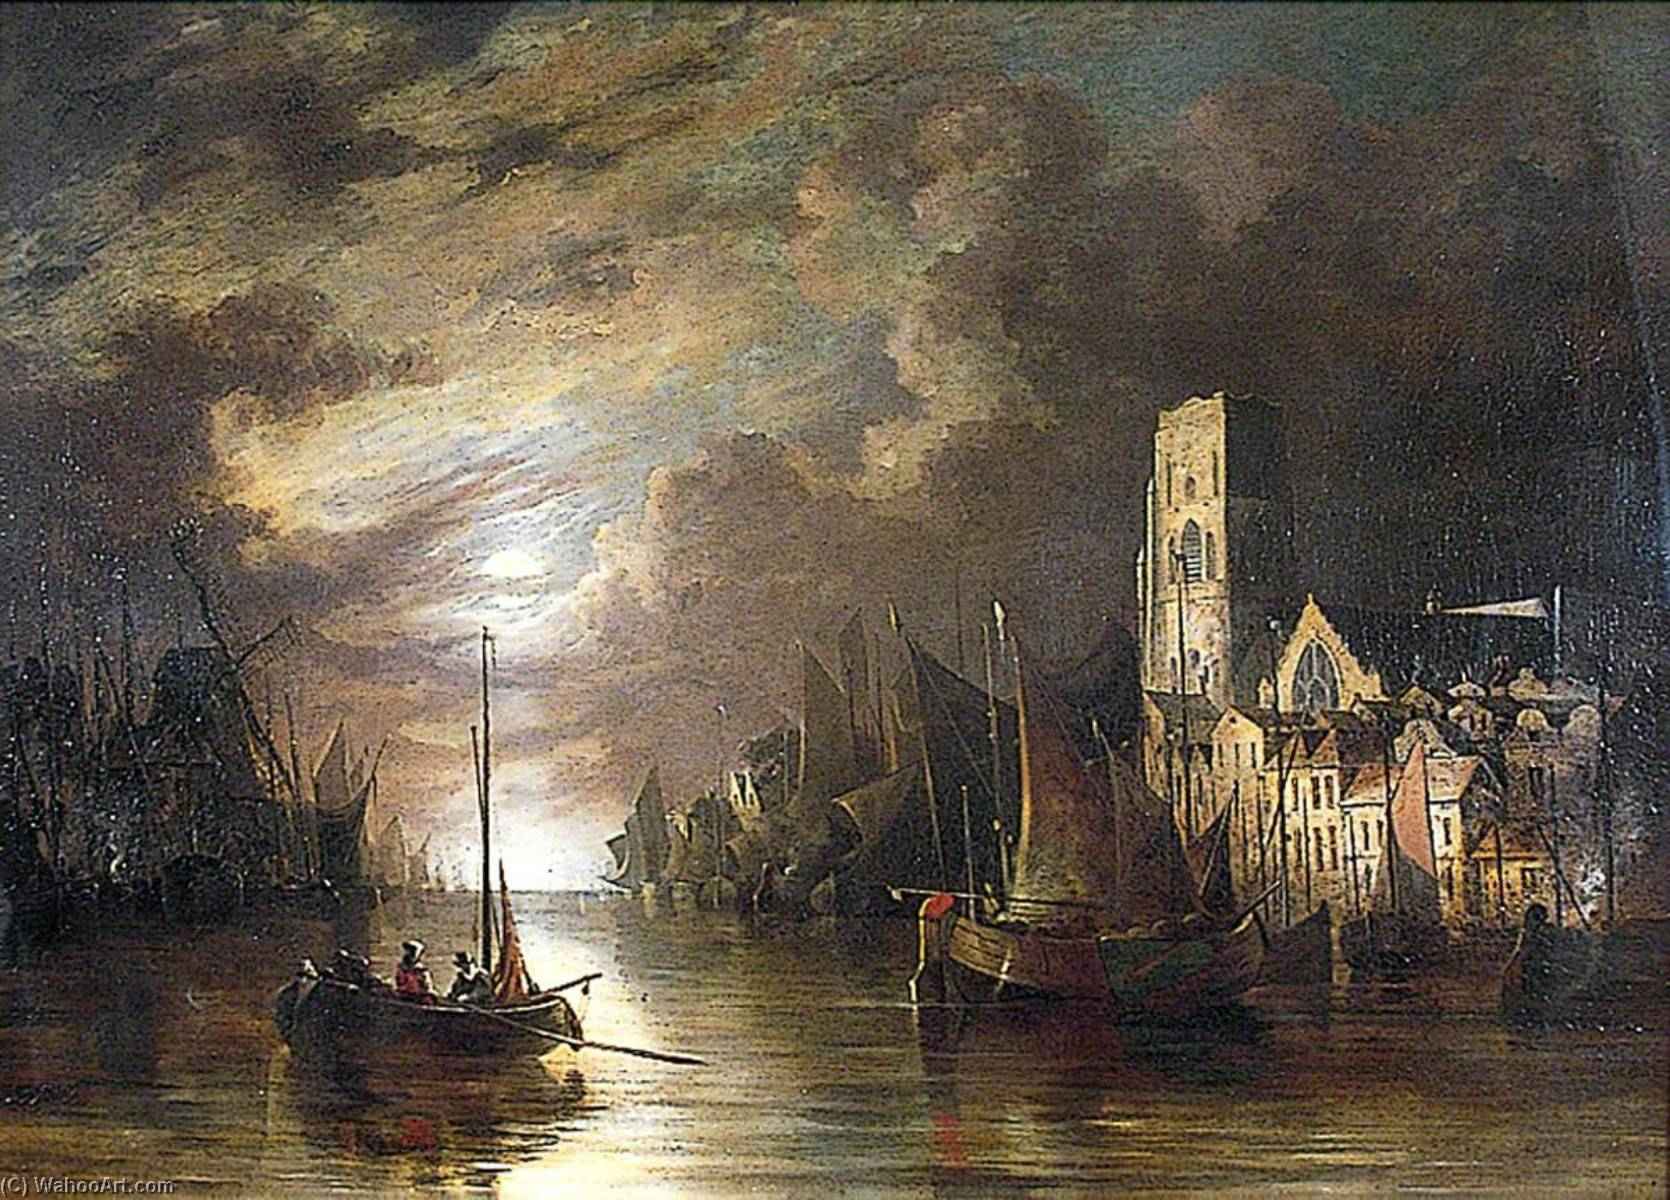 Amsterdam, The Netherlands, 1820 by John Berney Crome (1768-1821) | Oil Painting | ArtsDot.com